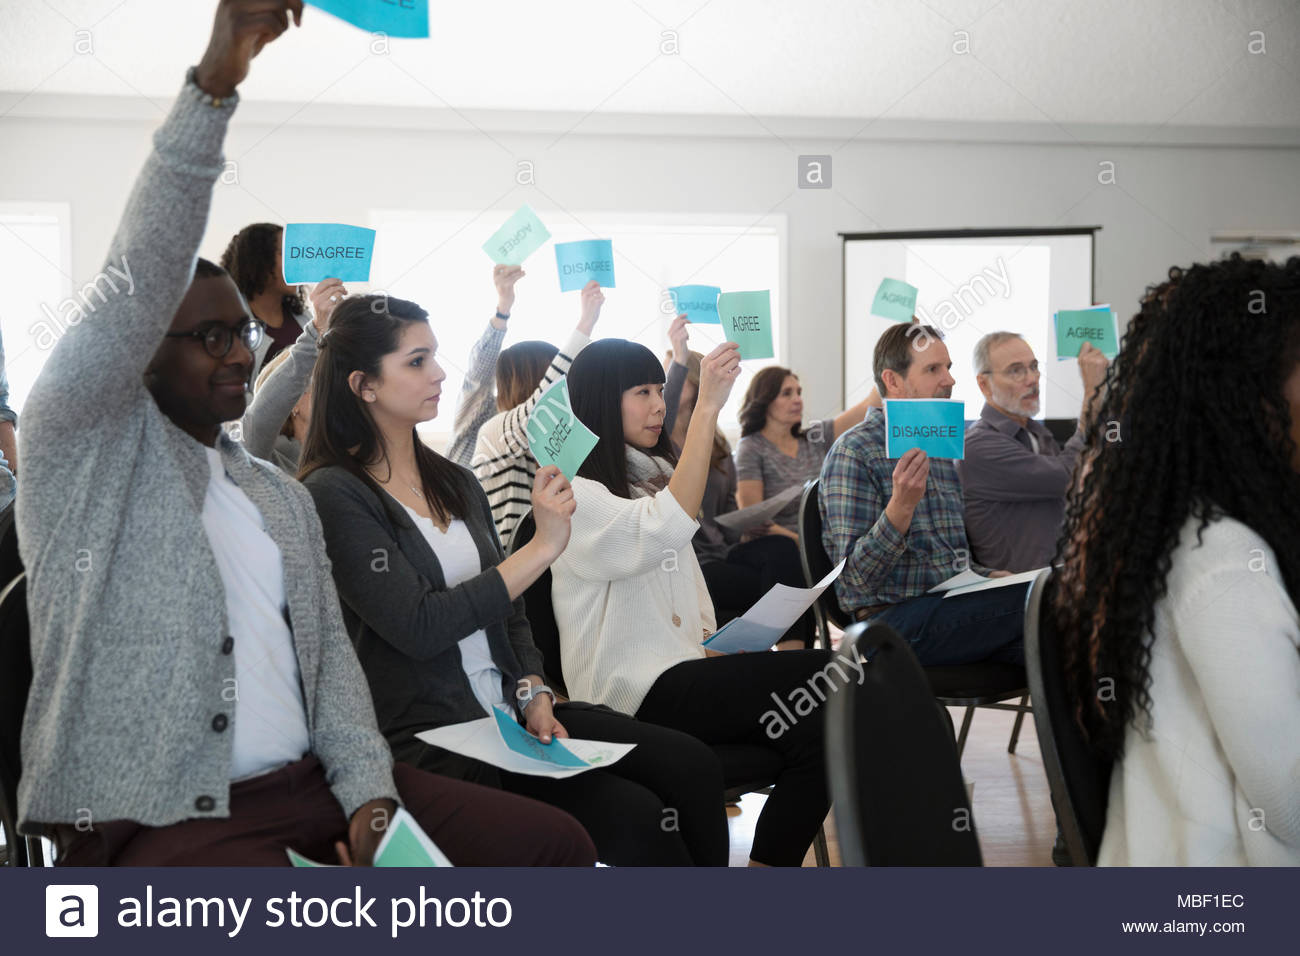 Audience voting at town hall meeting - Stock Image